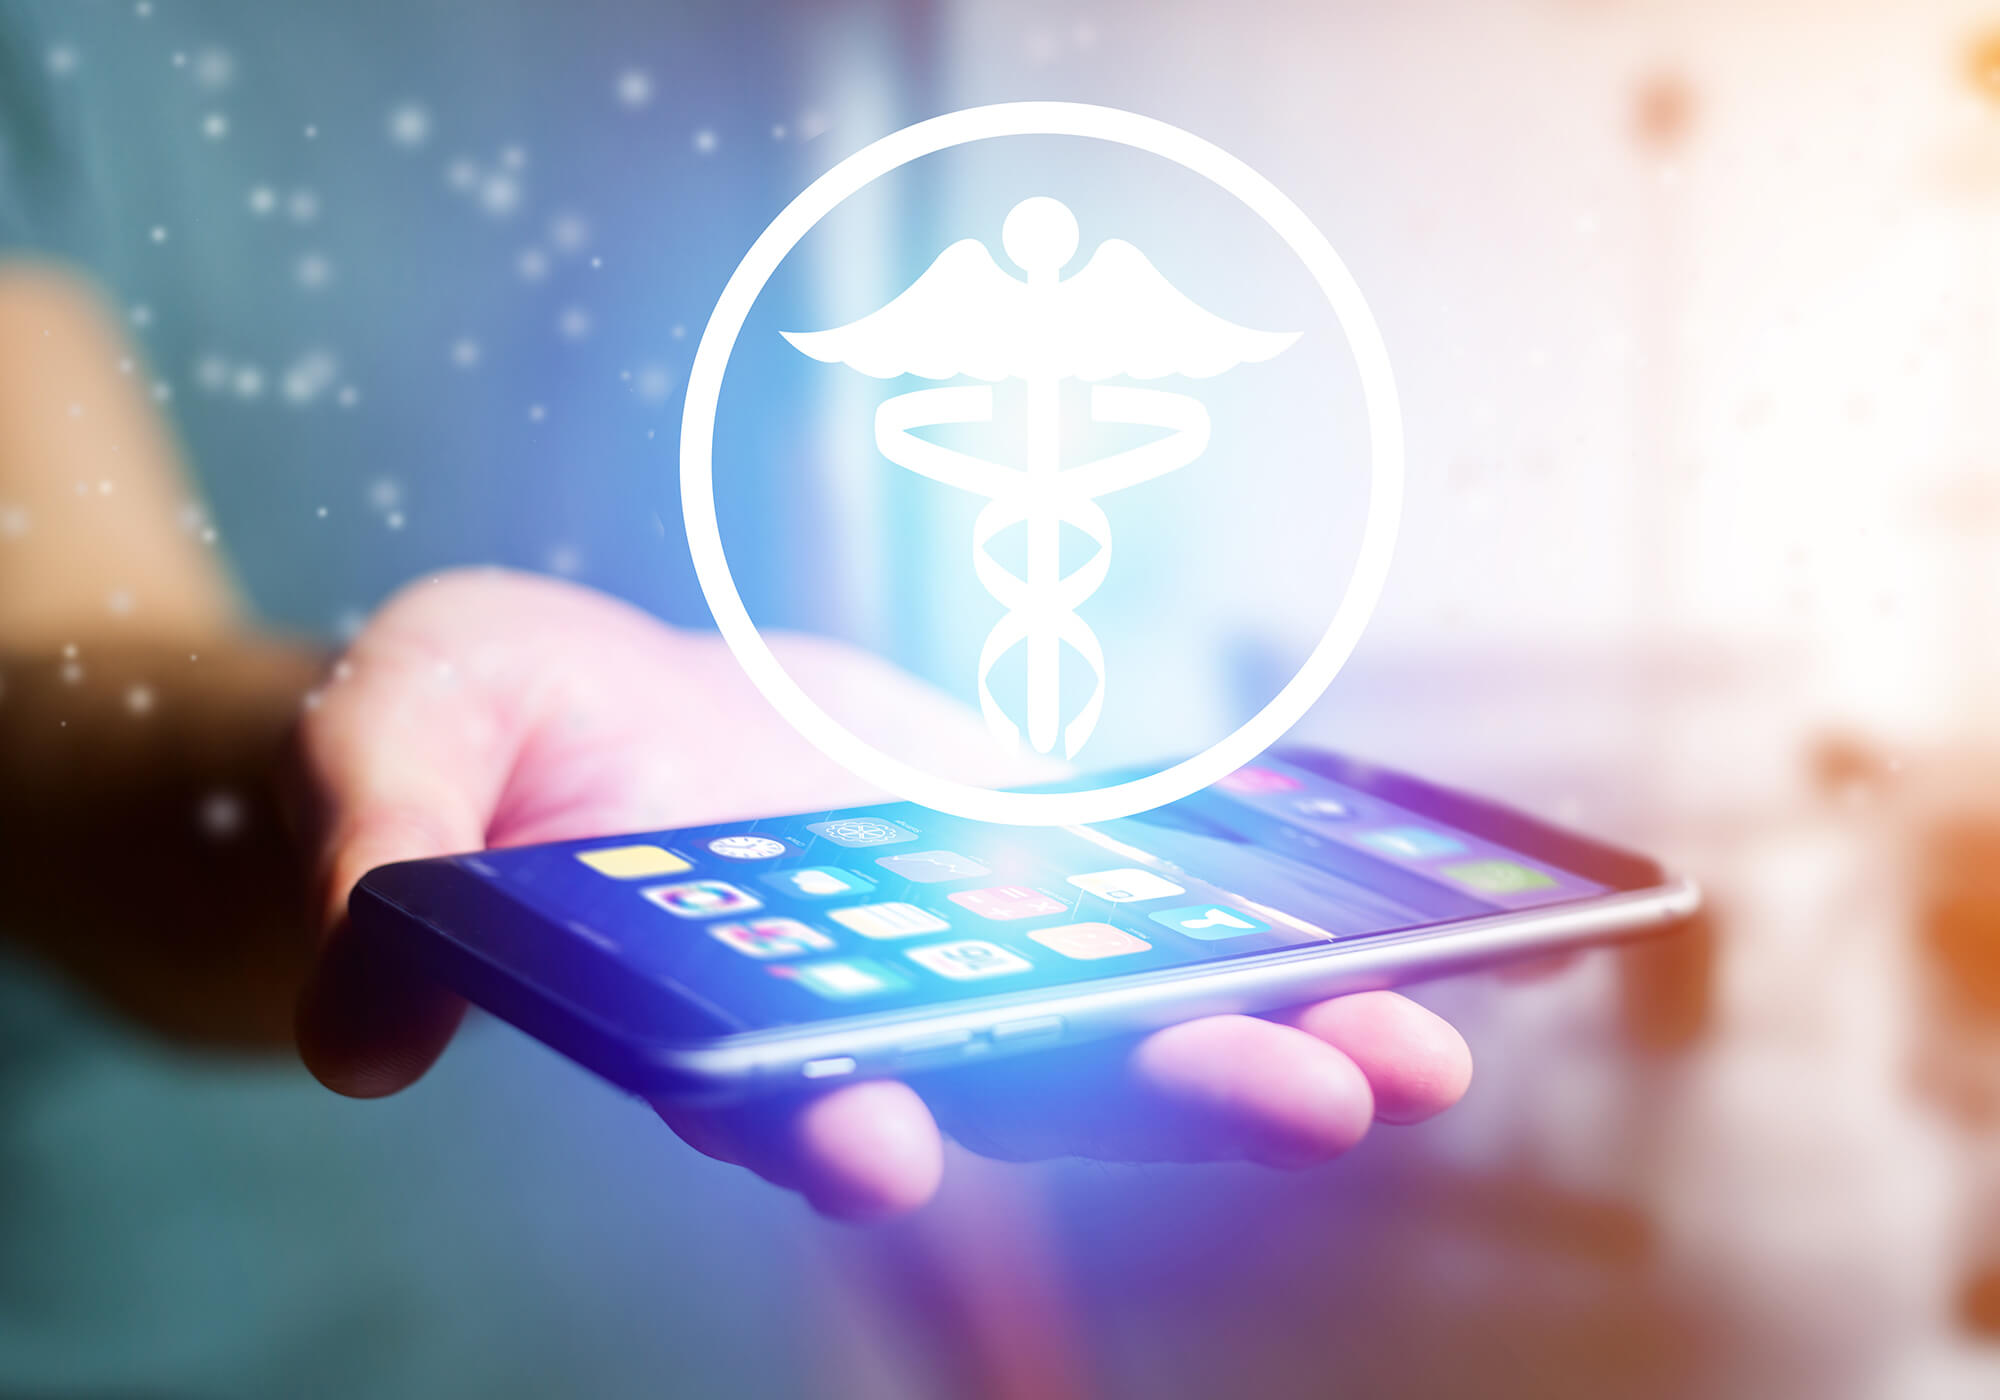 smartphone app with medical symbol